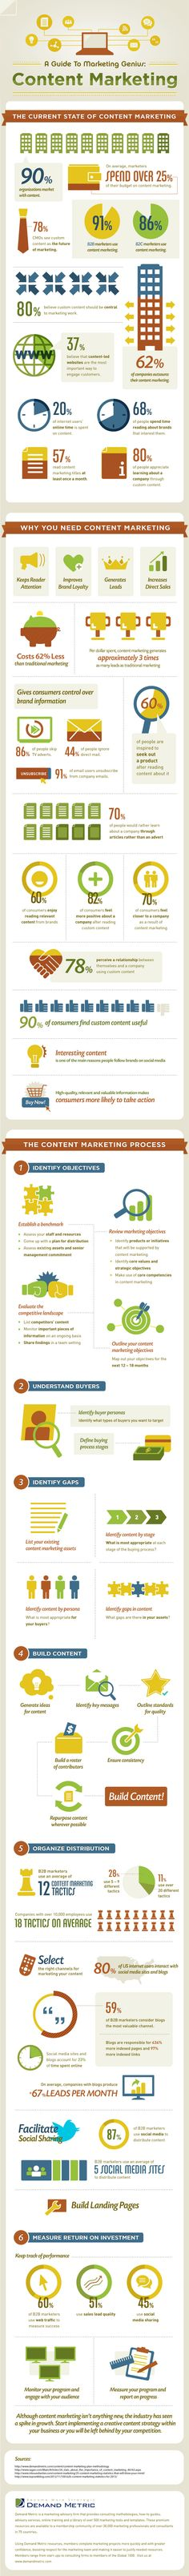 Content Marketing A Guide to Marketing Genius  a Giant Infographic